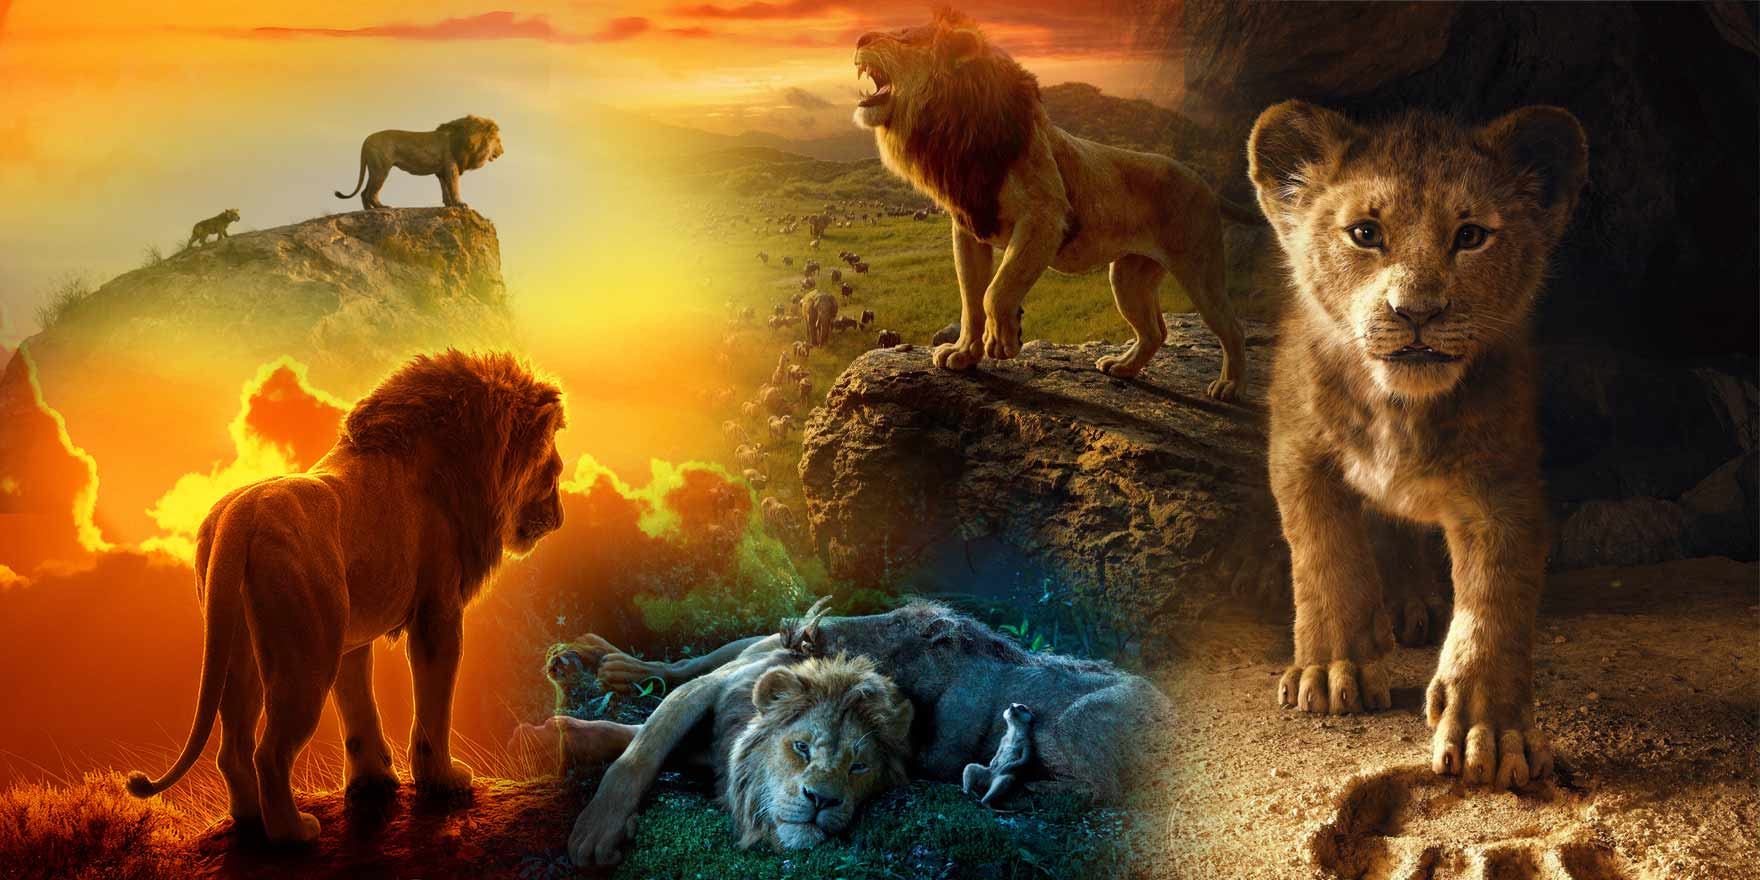 The Lion King - Header Image